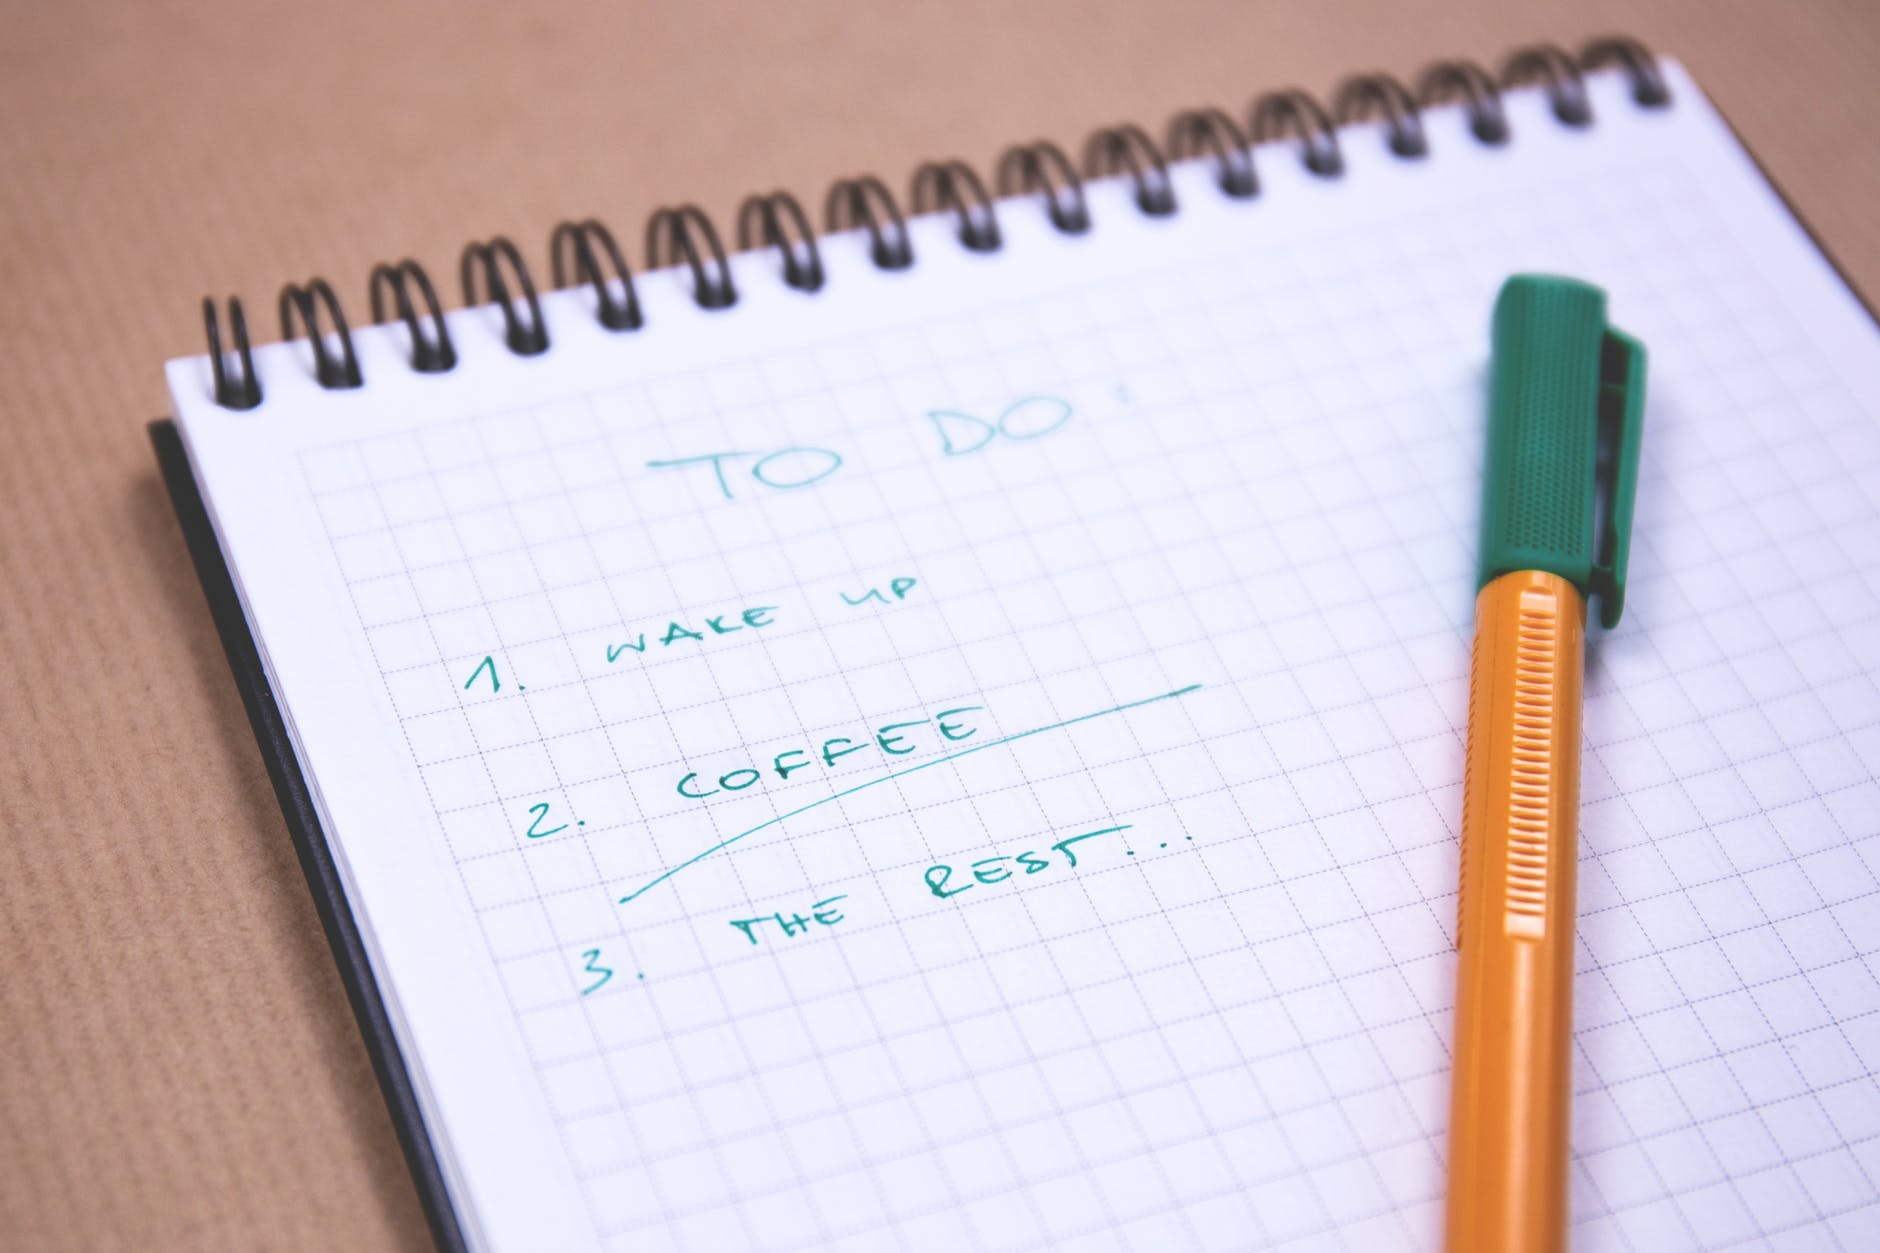 A to-do list.